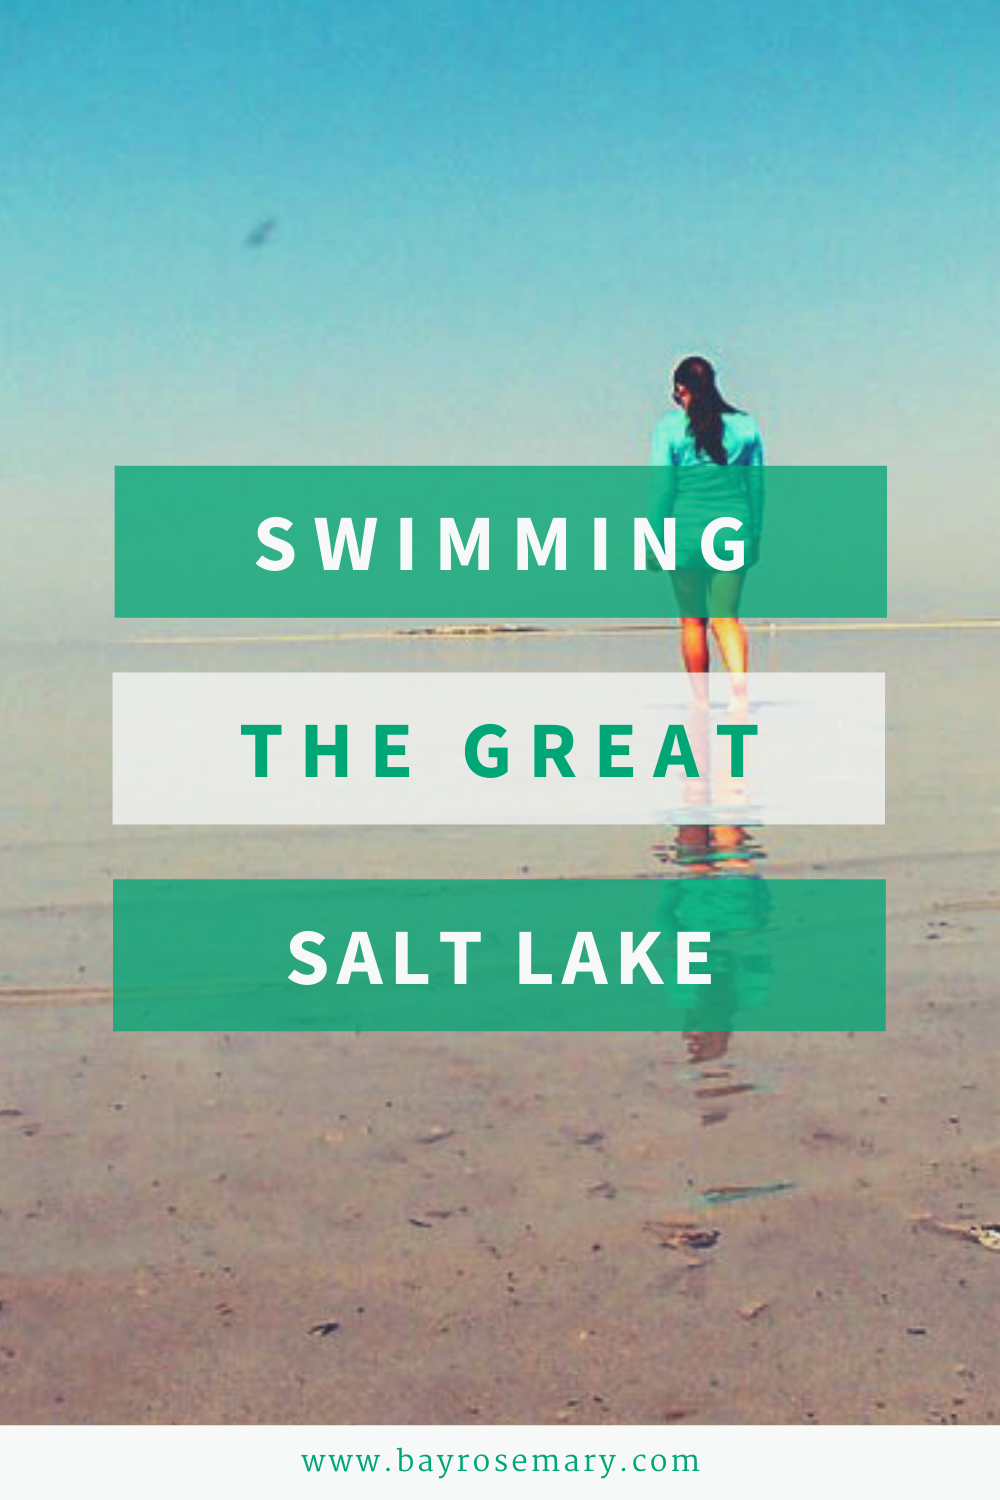 """Image for Pinterest with text """"swimming the great salt lake"""""""